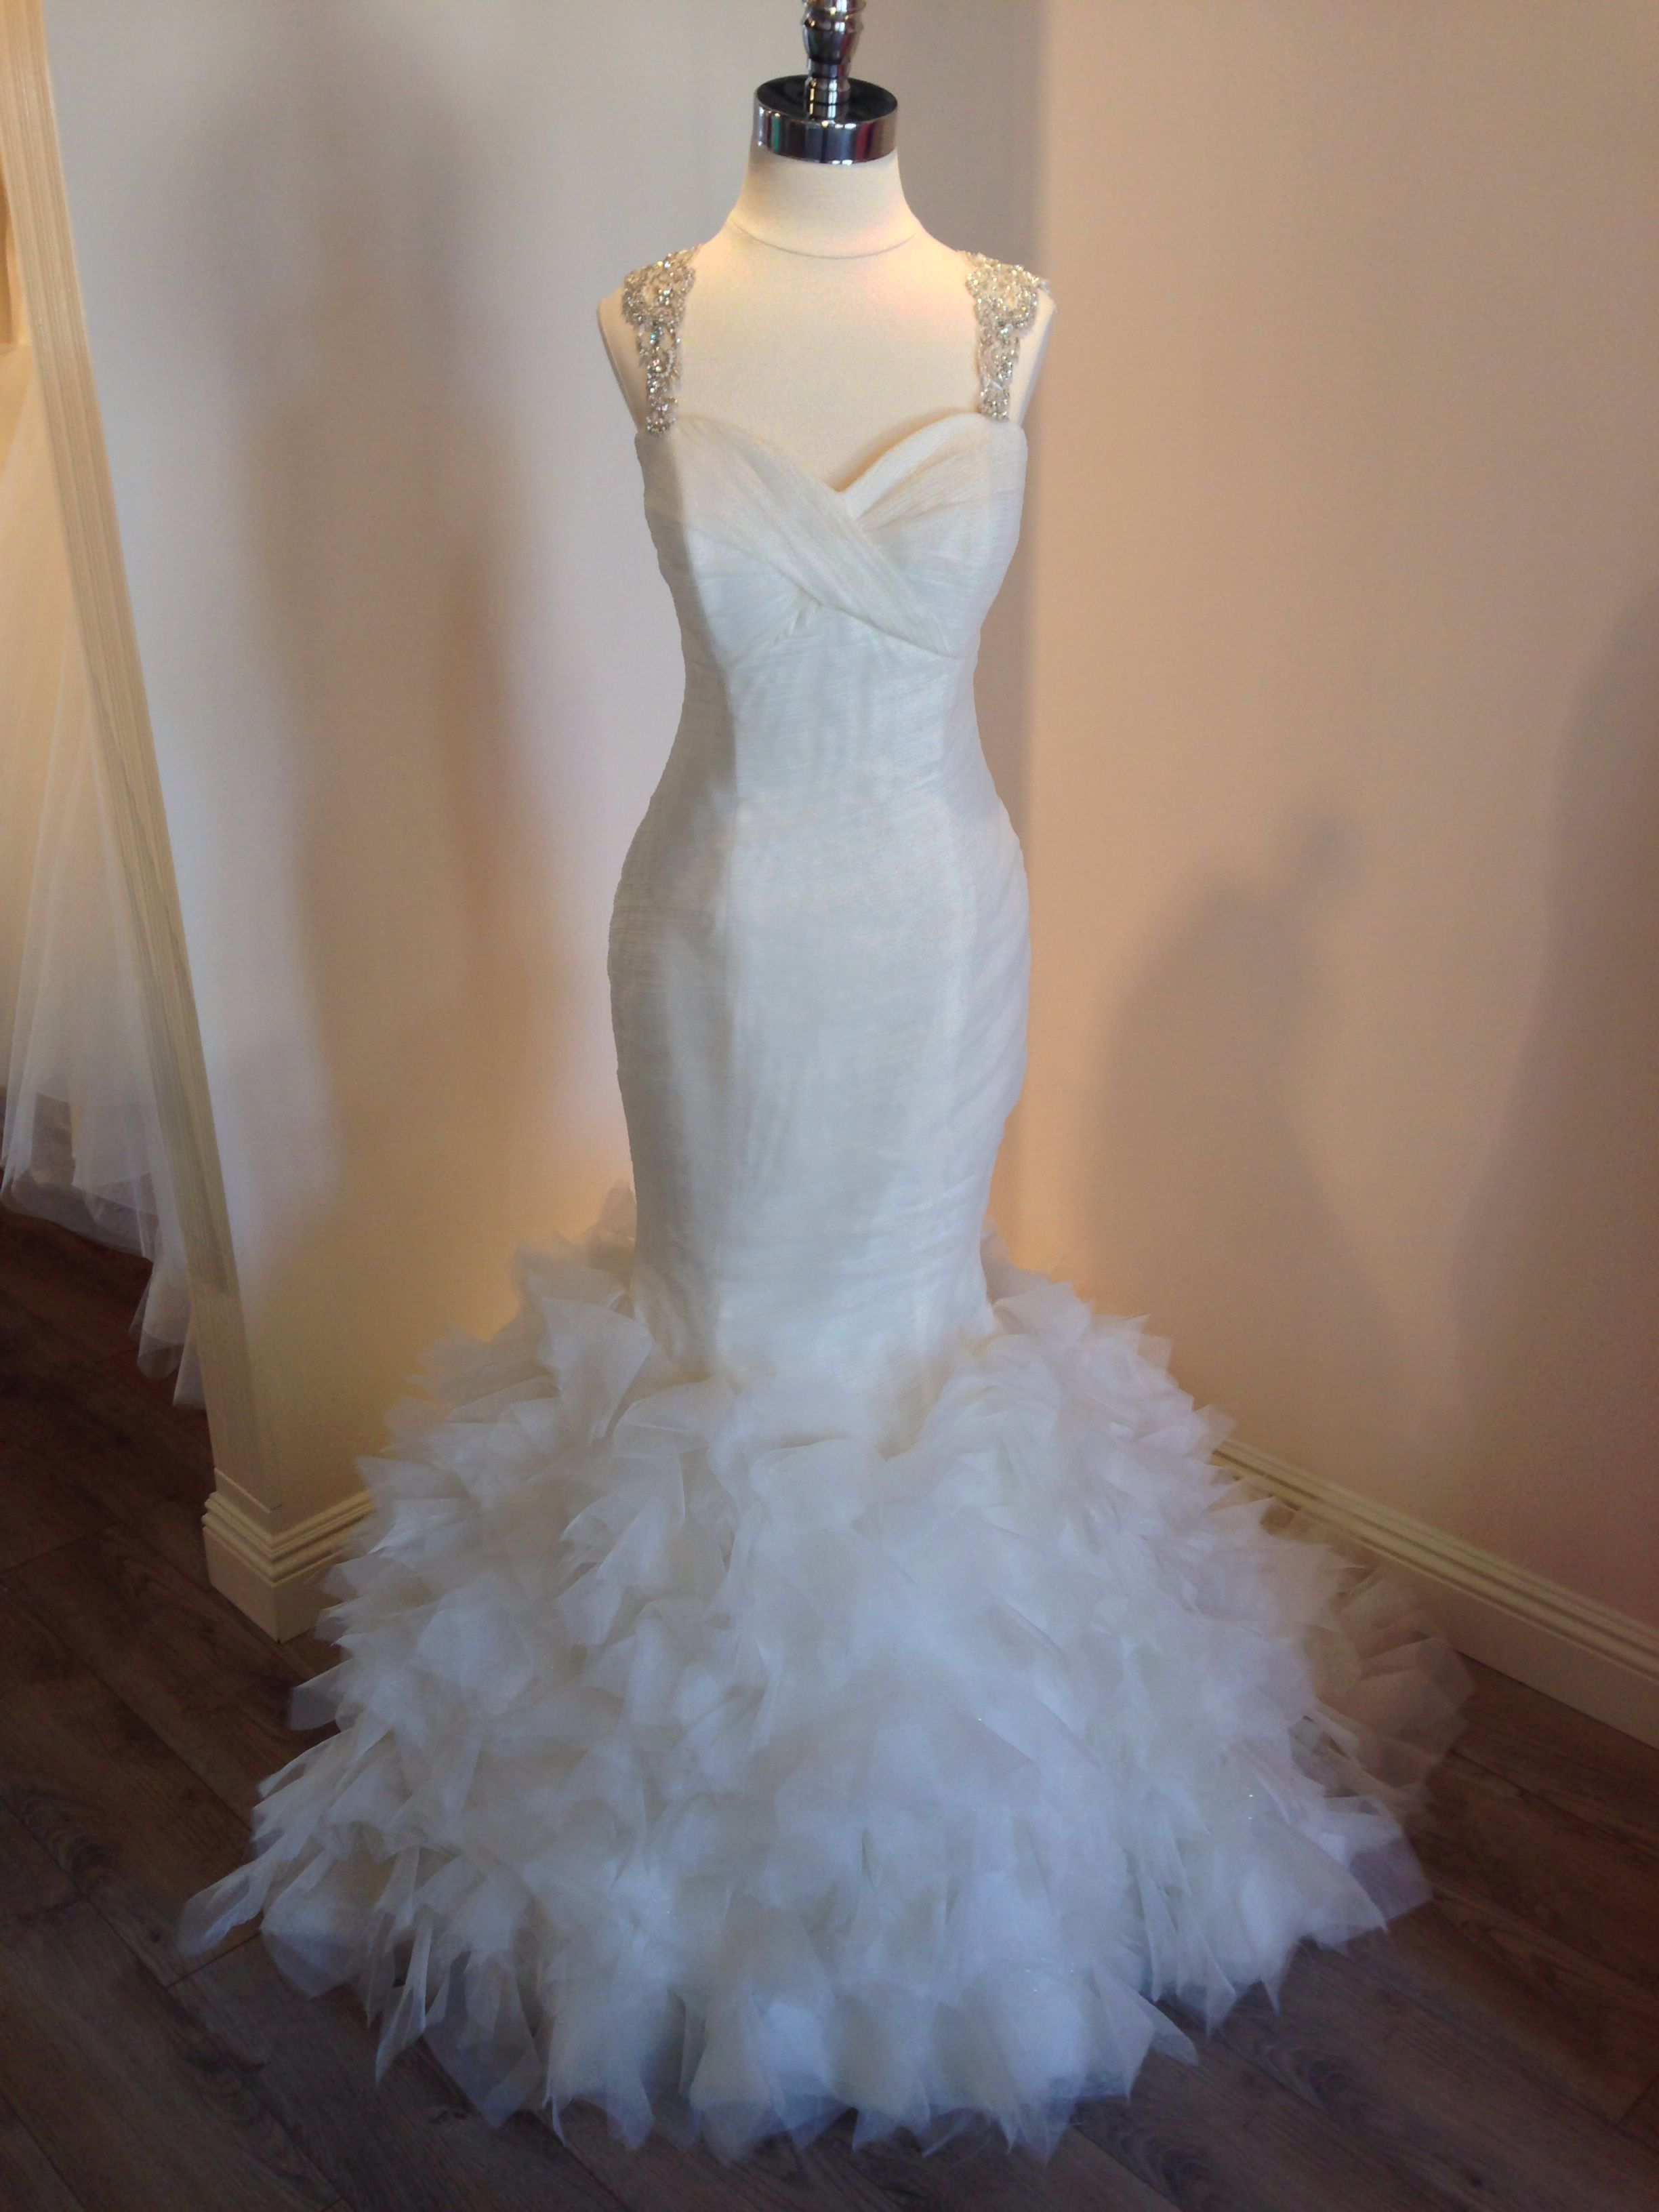 Winnie Couture mermaid gown at J Bridal | Wedding Gowns and Attire ...